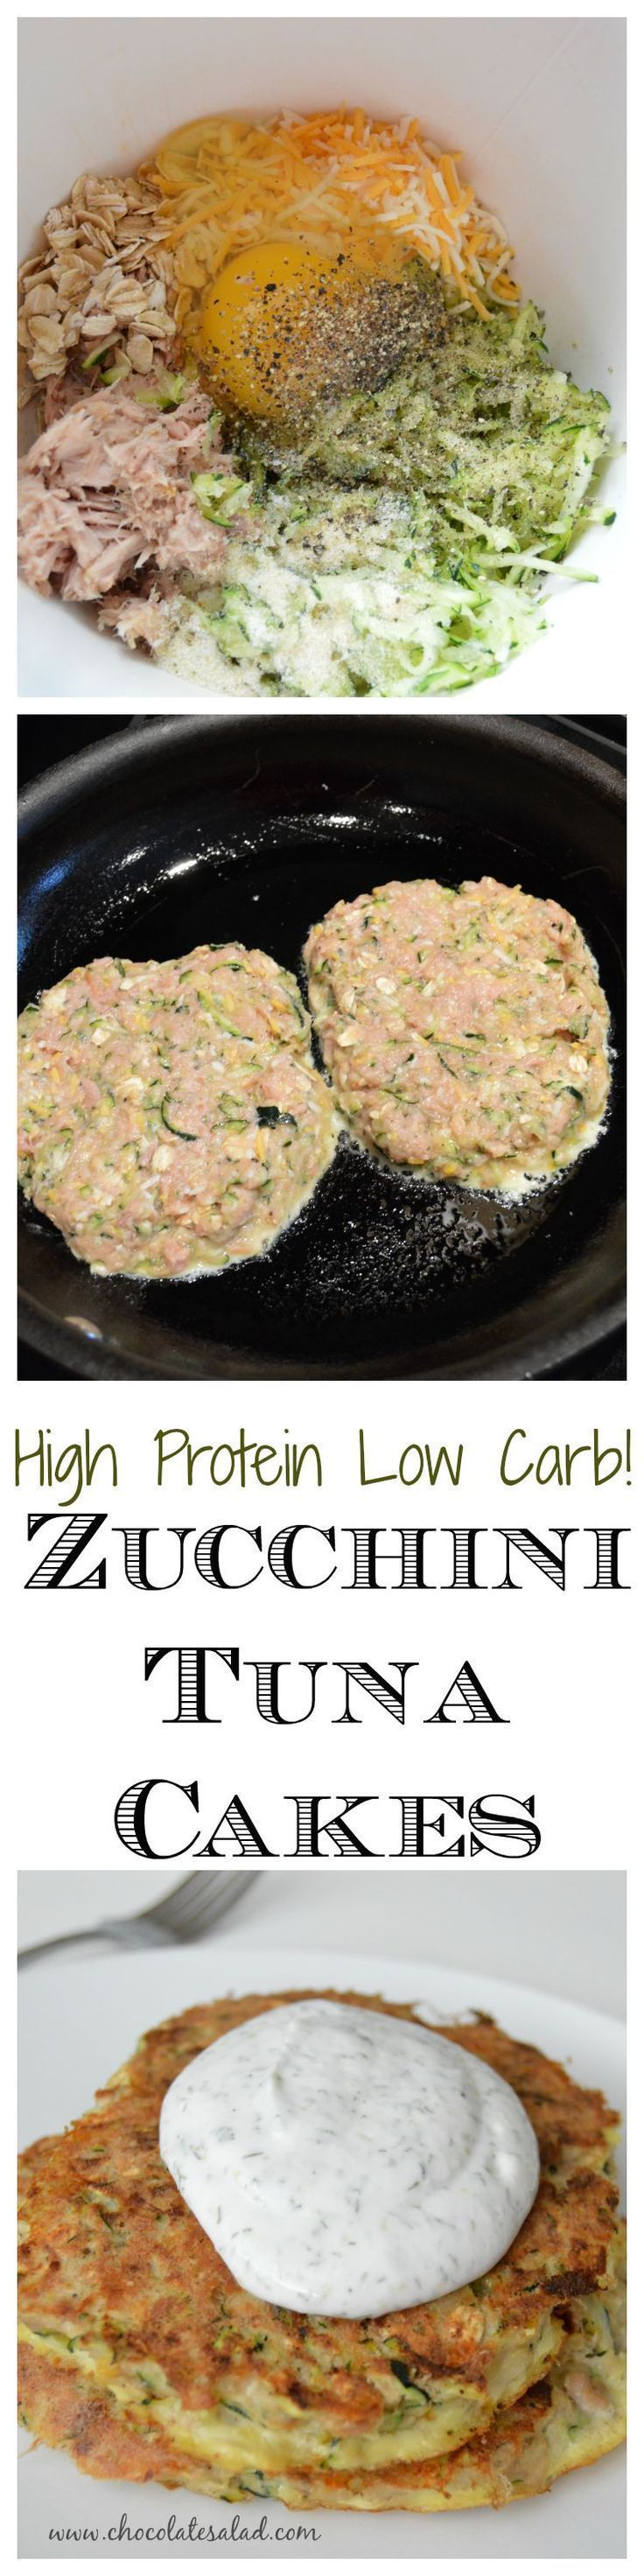 Low Carb Zucchini Tuna Cakes. Only 280 calories and 34 g protein! Very low in carbs, but high in protein - 34g! This keto recipe is a great-tasting healthy meal.